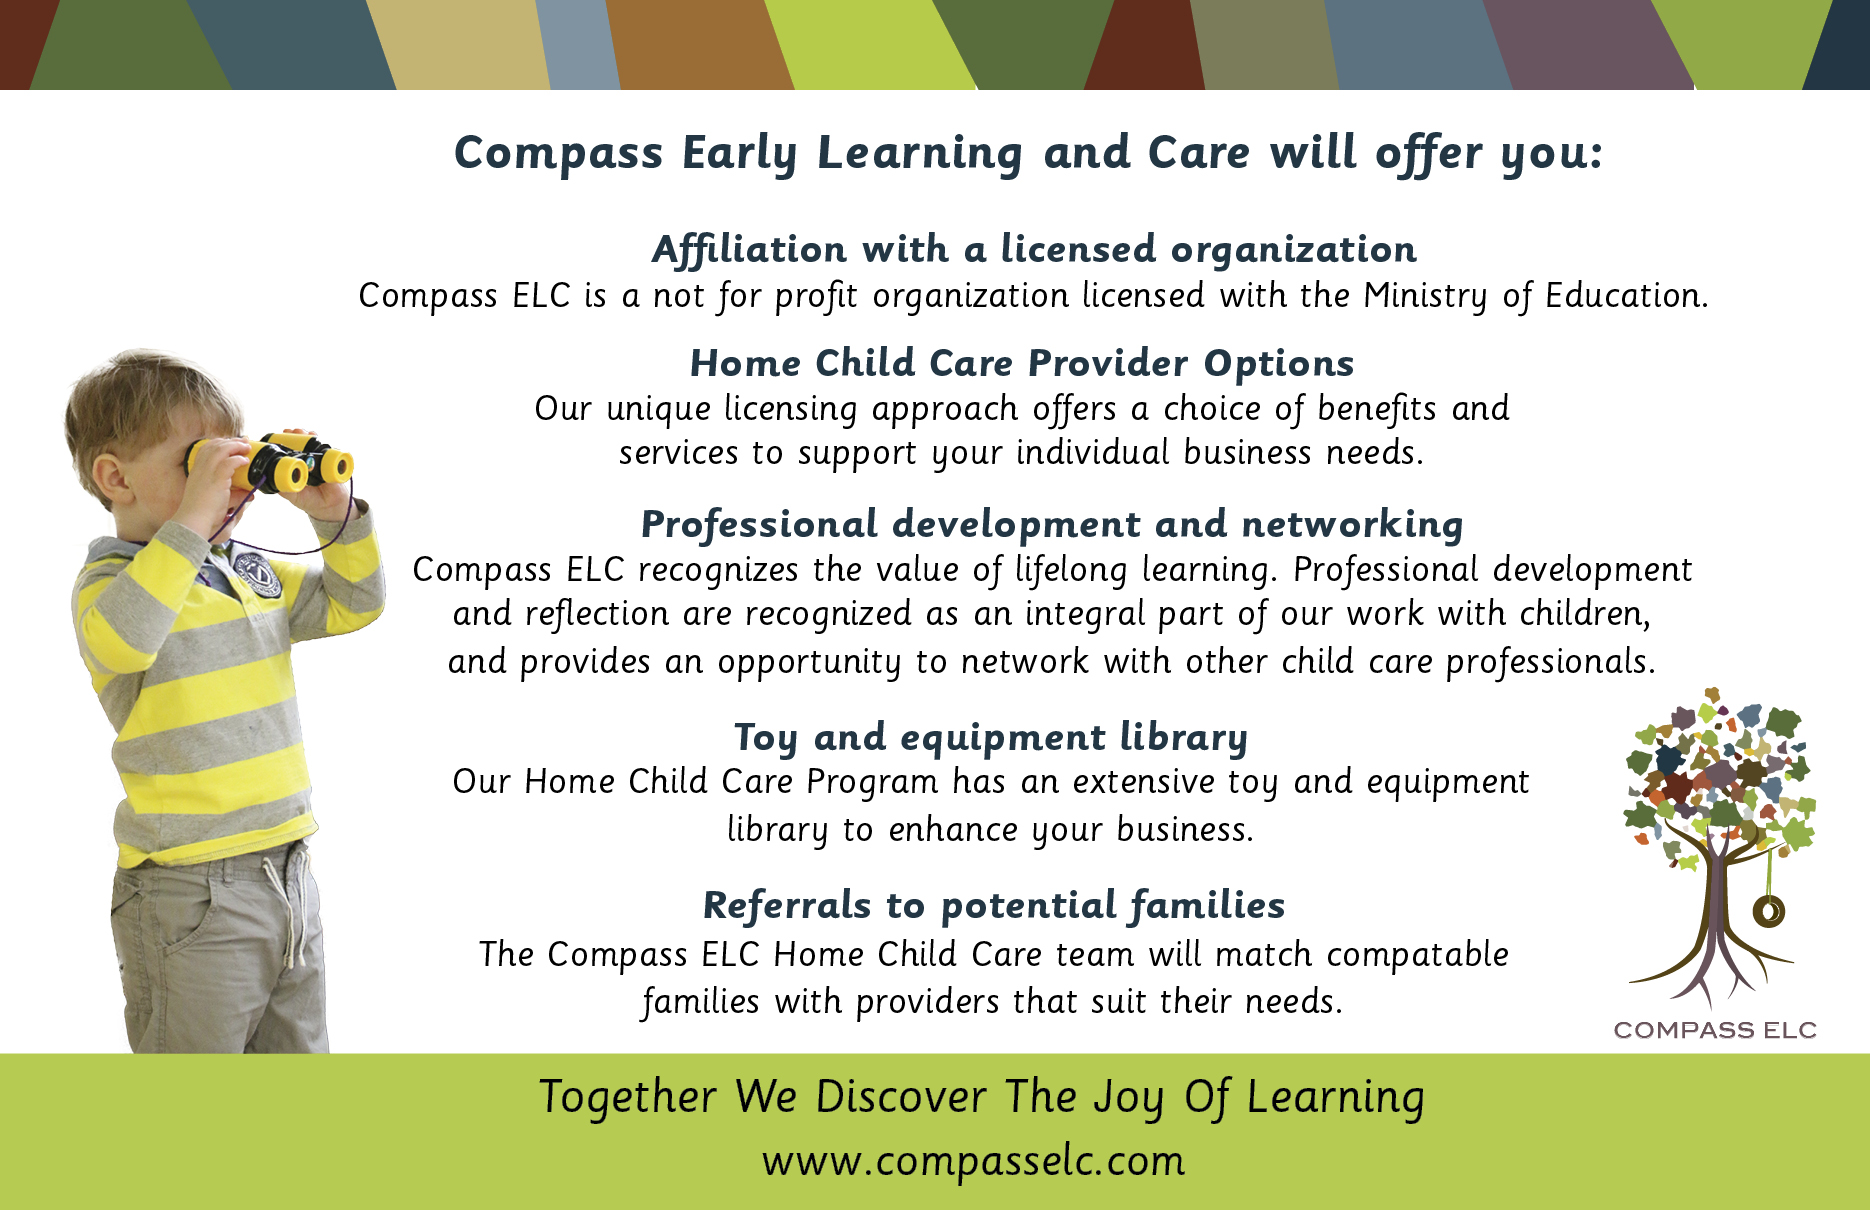 becoming a home child care provider compass recruitment flyer ptbo home child care lisa2